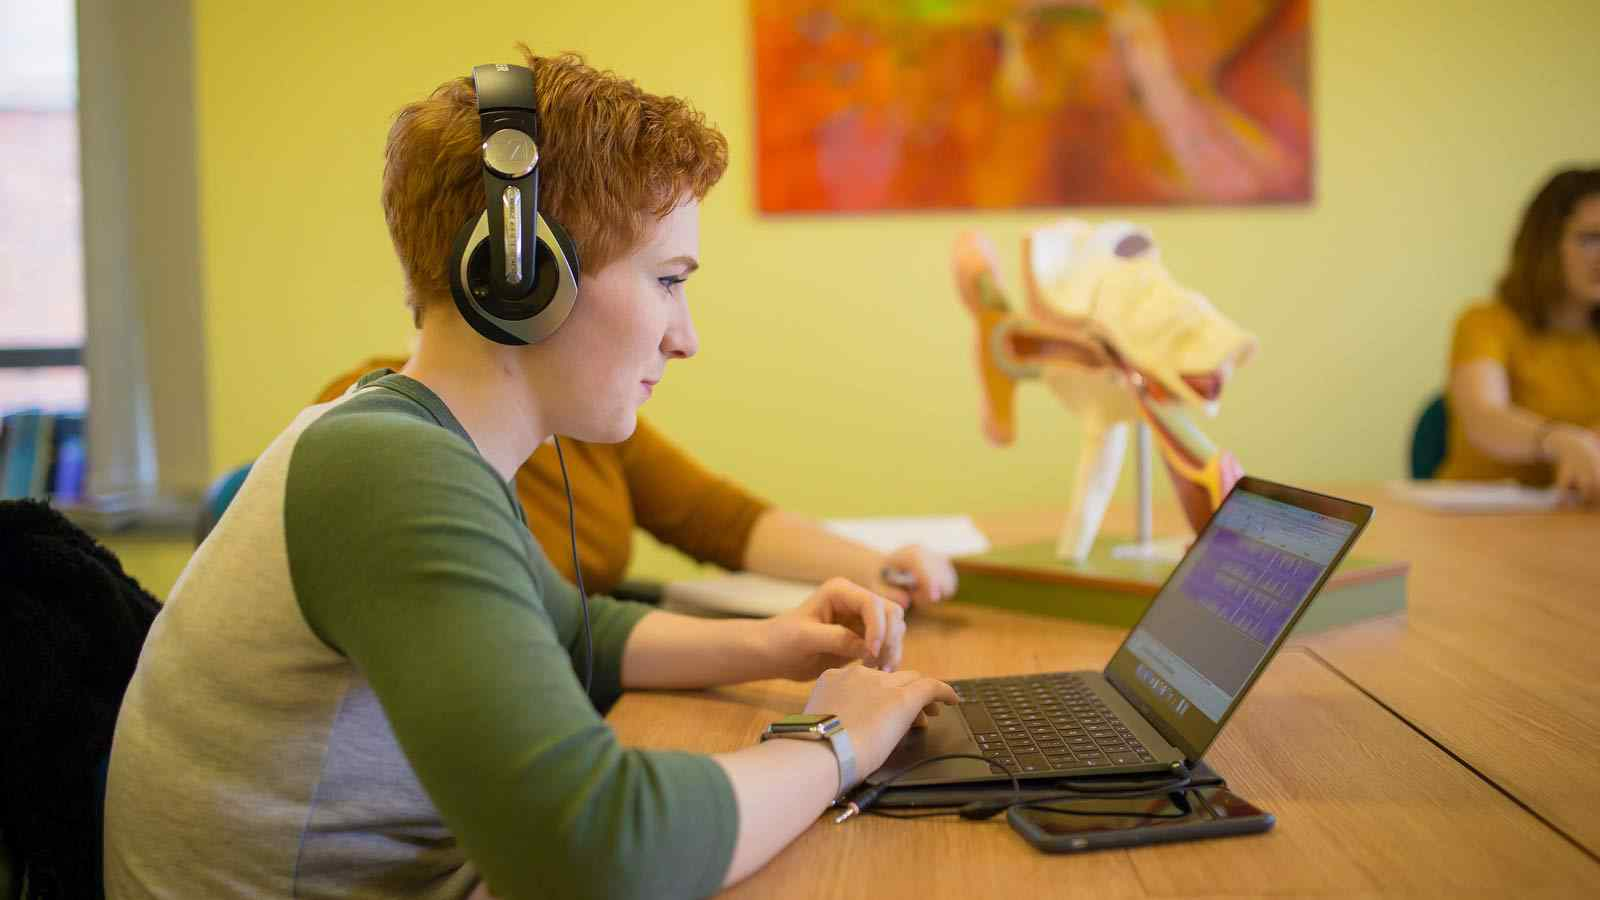 Student listening to sound file on laptop